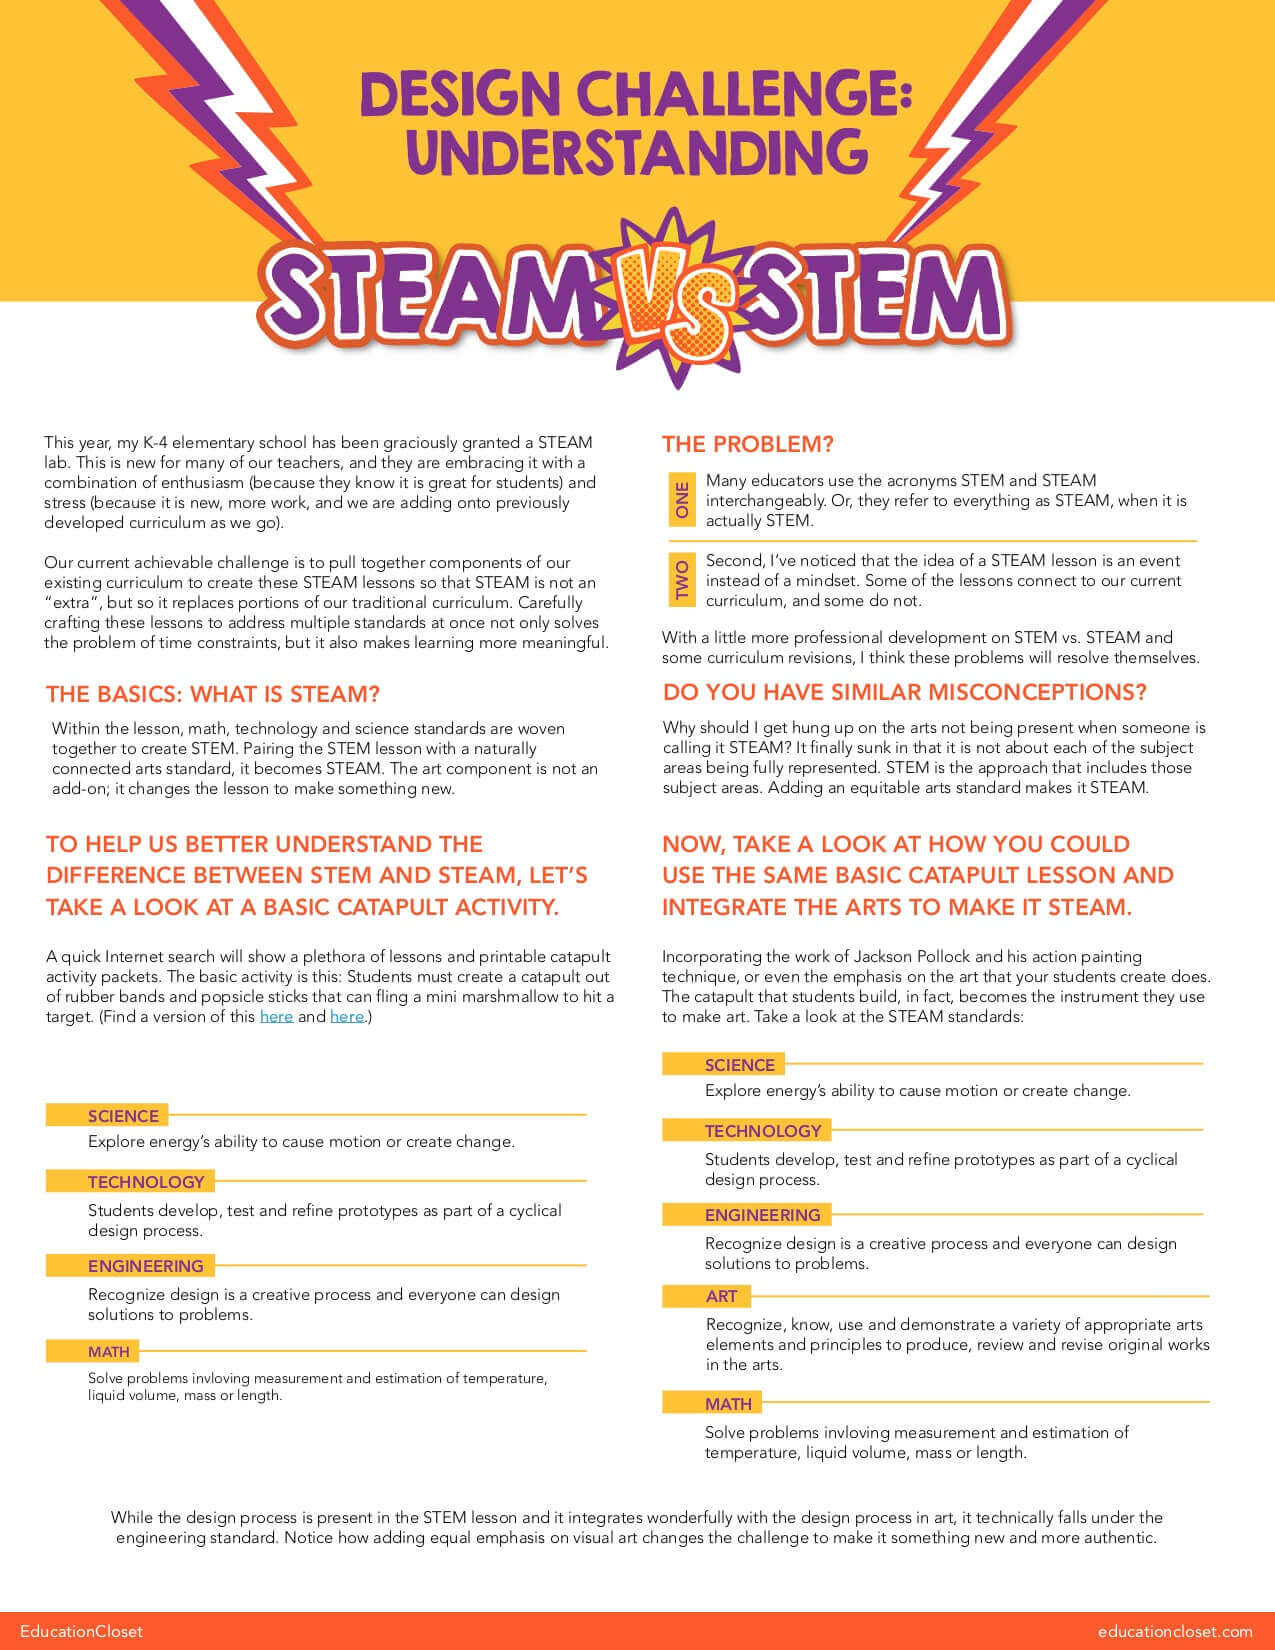 STEM vs. STEAM Design Challenge Resource